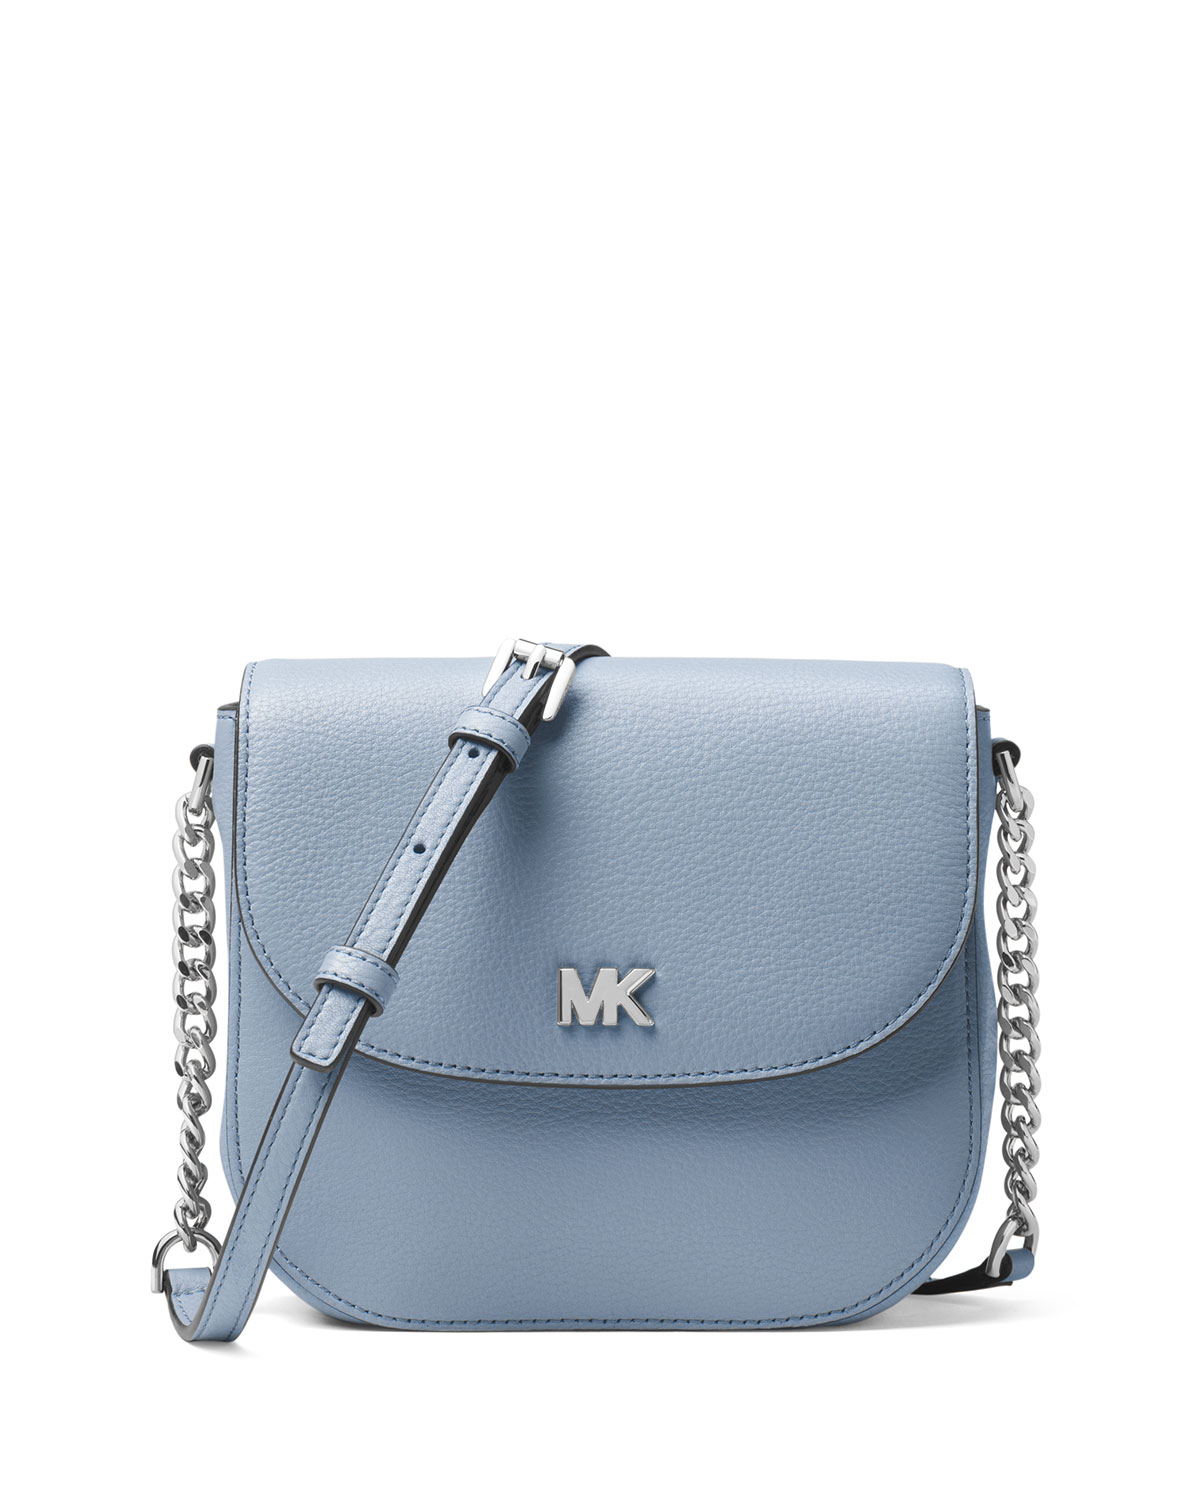 c87f86a1208e7b MICHAEL Michael Kors Half-Dome Leather Crossbody Bag - Silver Hardware